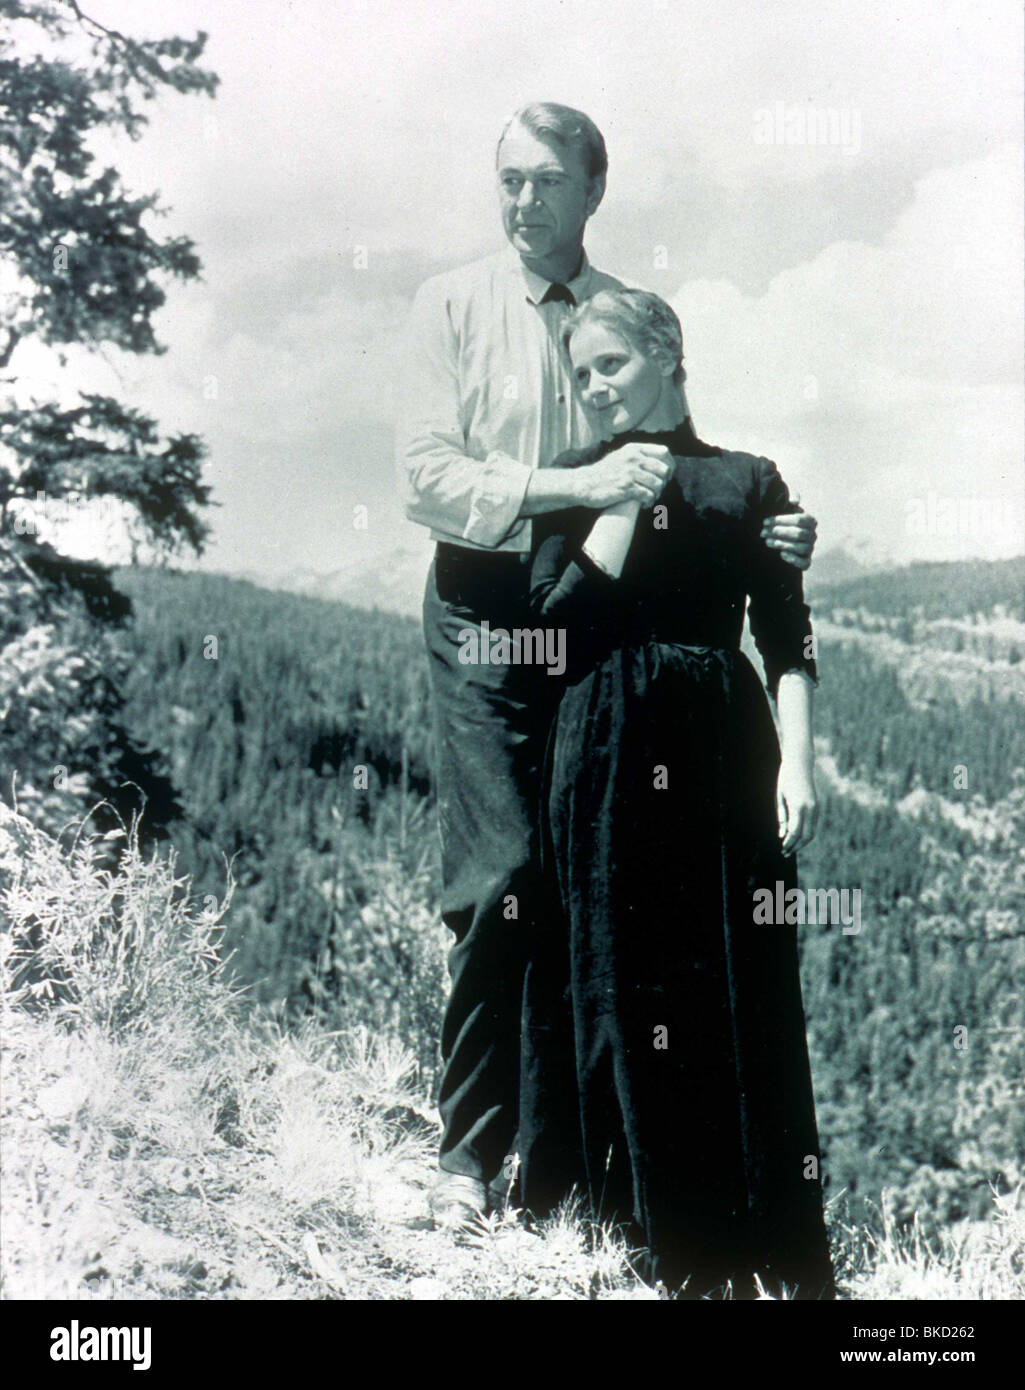 Jacques schell photographe synthesis of all pictures from www - The Hanging Tree 1959 Gary Cooper Maria Schell Hgtr 002 Stock Image